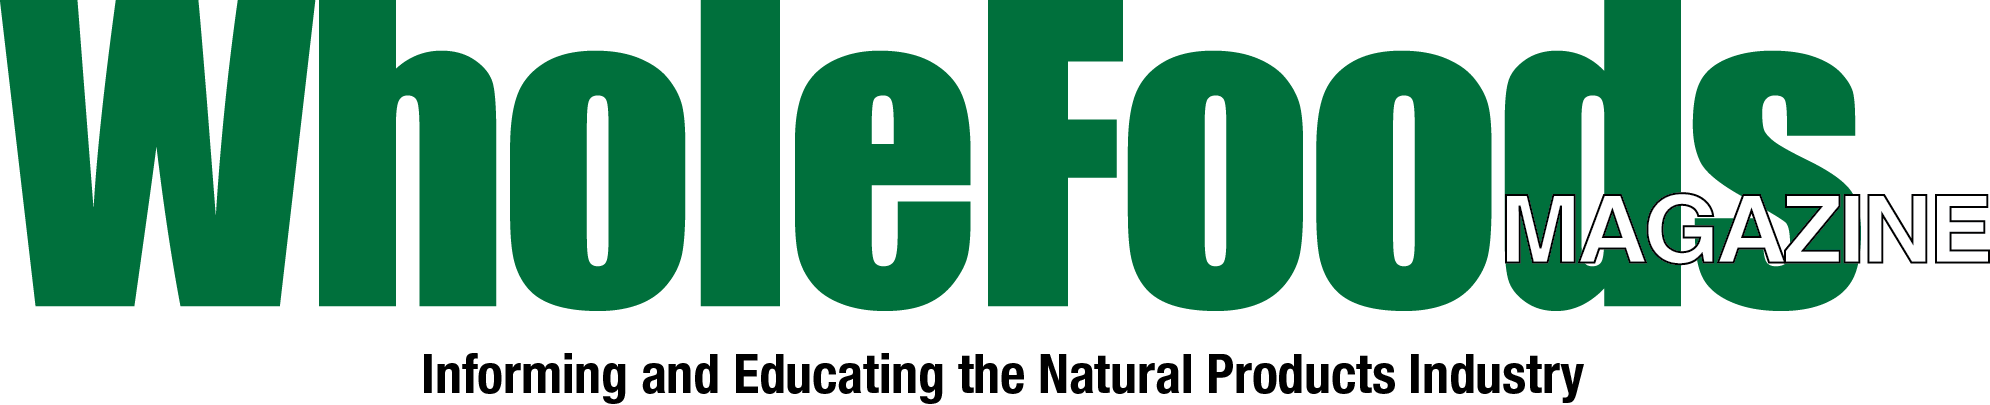 whole foods logo png